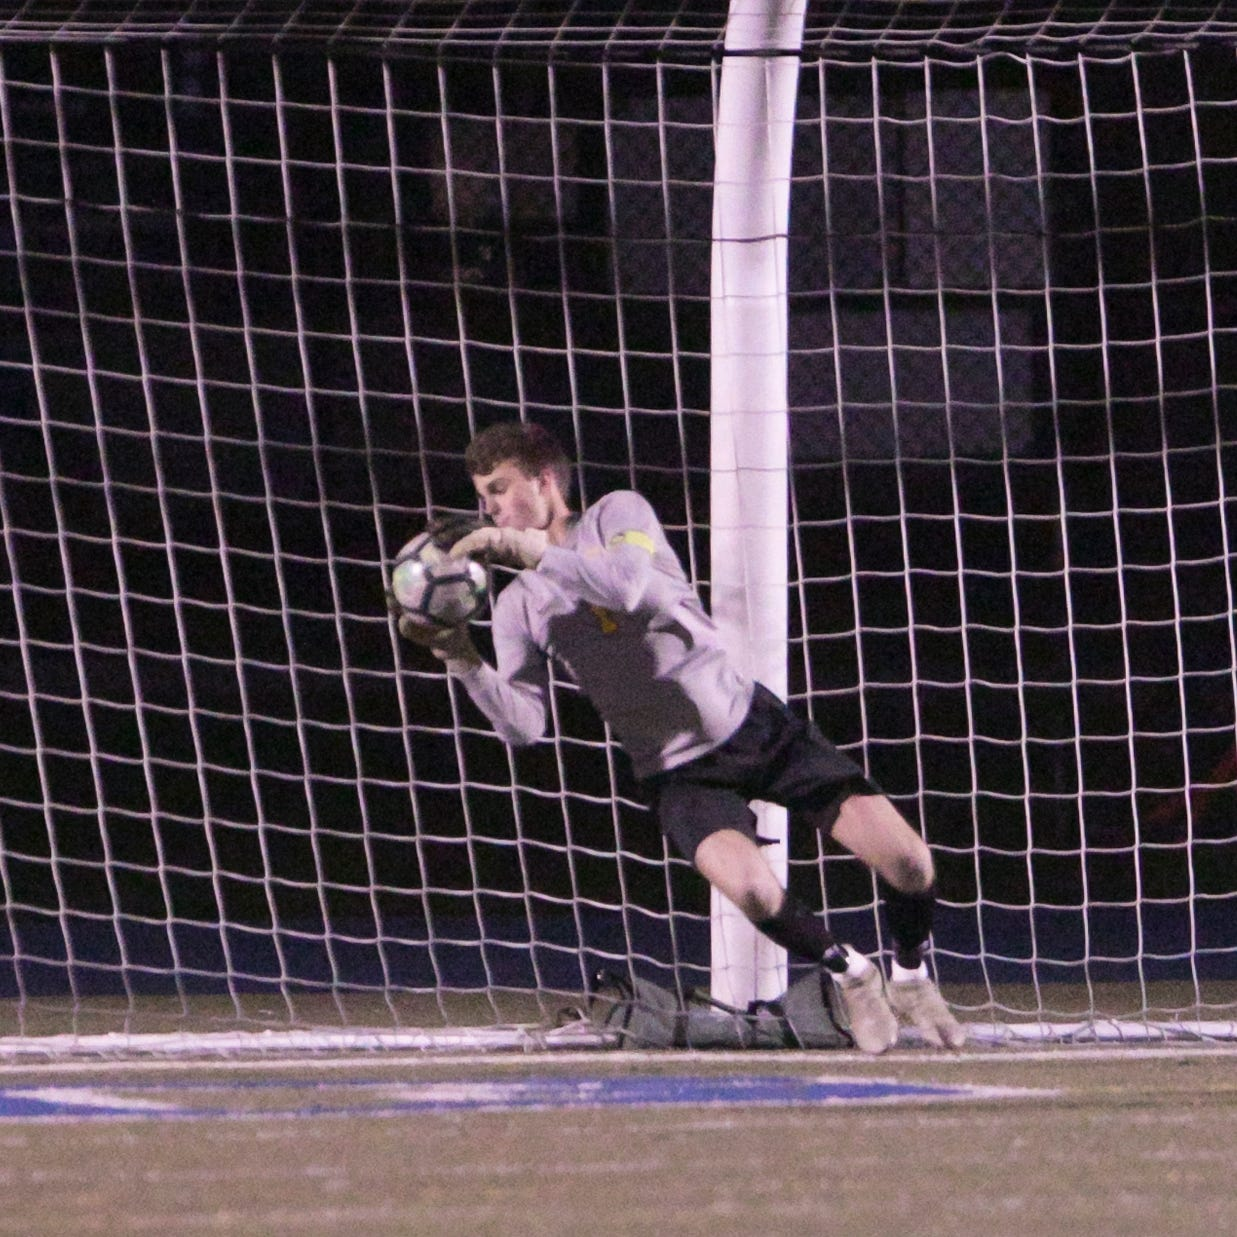 Hartland, Lakeland goalies put on show in soccer shootout